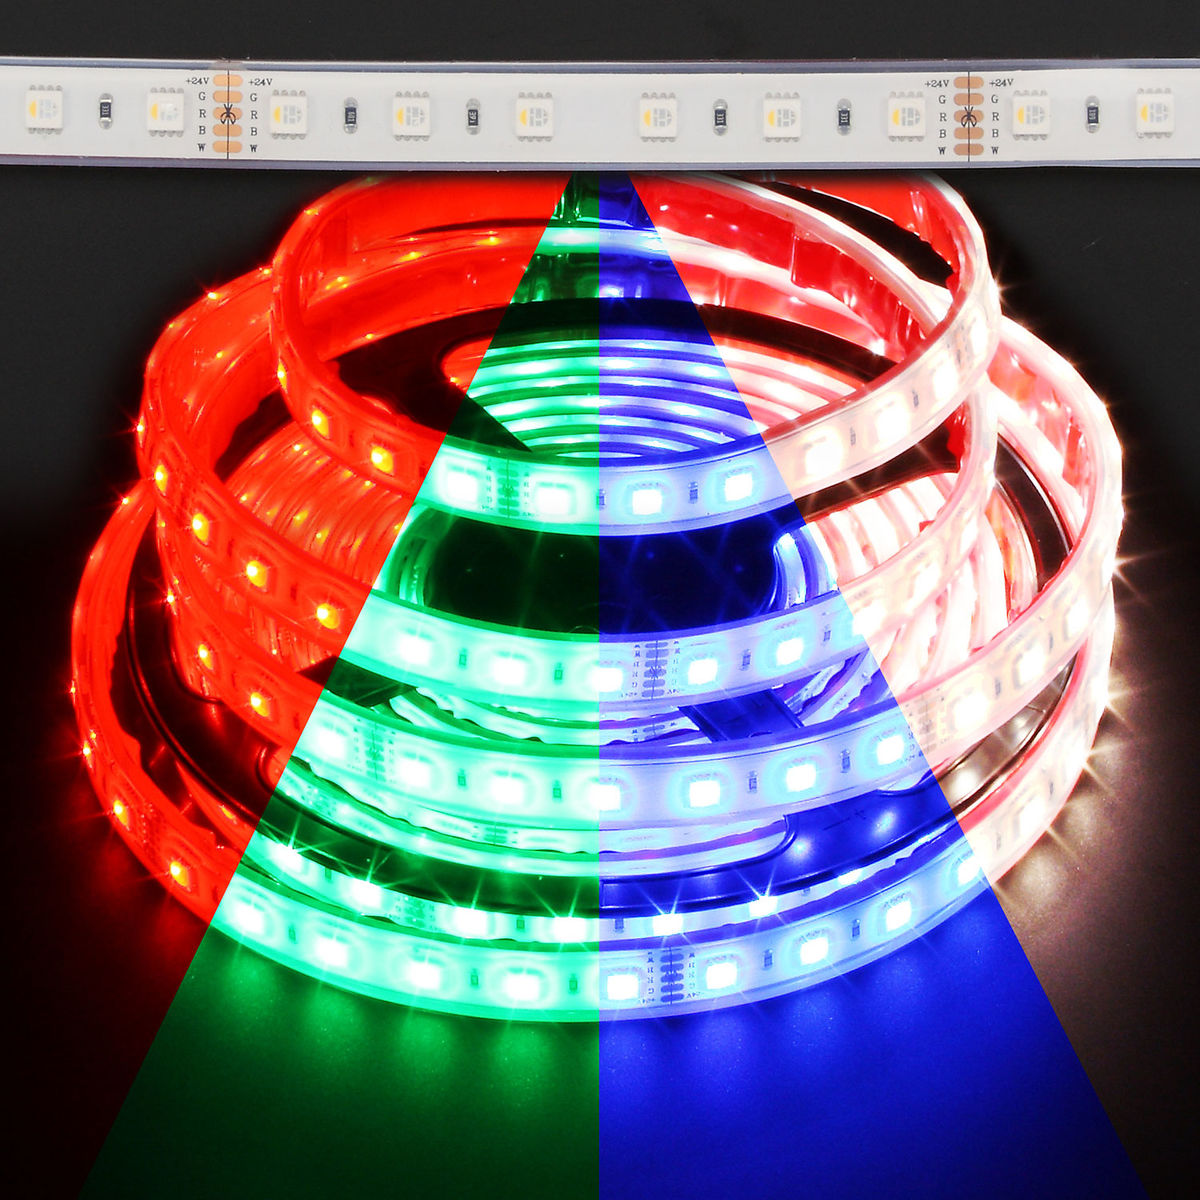 Color Changing Led Light Strips: Color Changing RGB Plus Daylight White Slim Waterproof